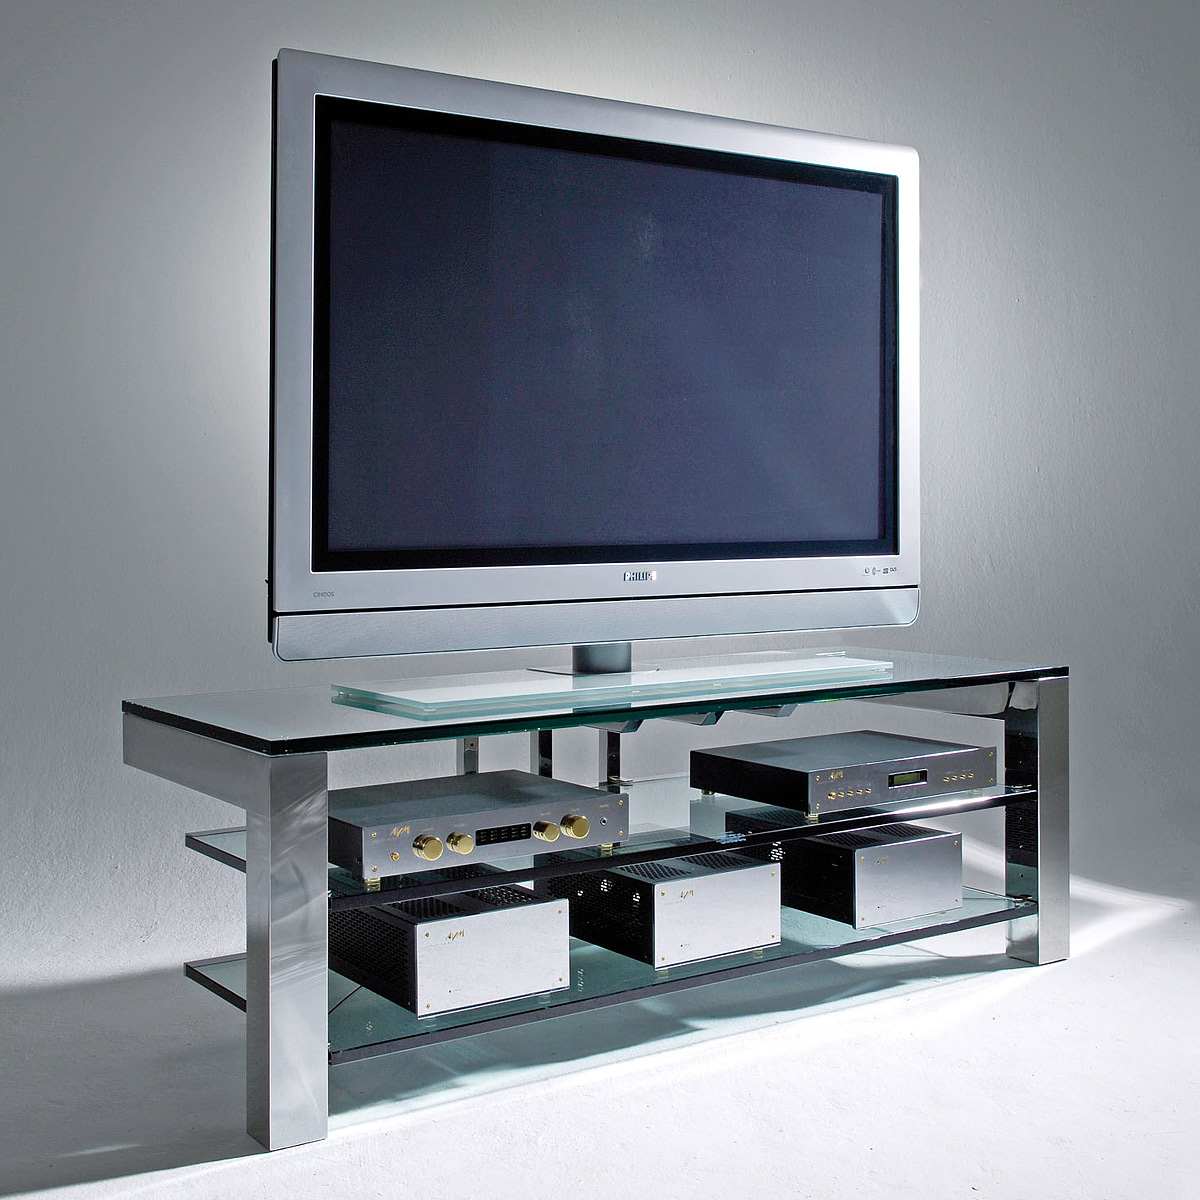 spectral high end he2002 he2003 tv m bel bei hifi tv. Black Bedroom Furniture Sets. Home Design Ideas